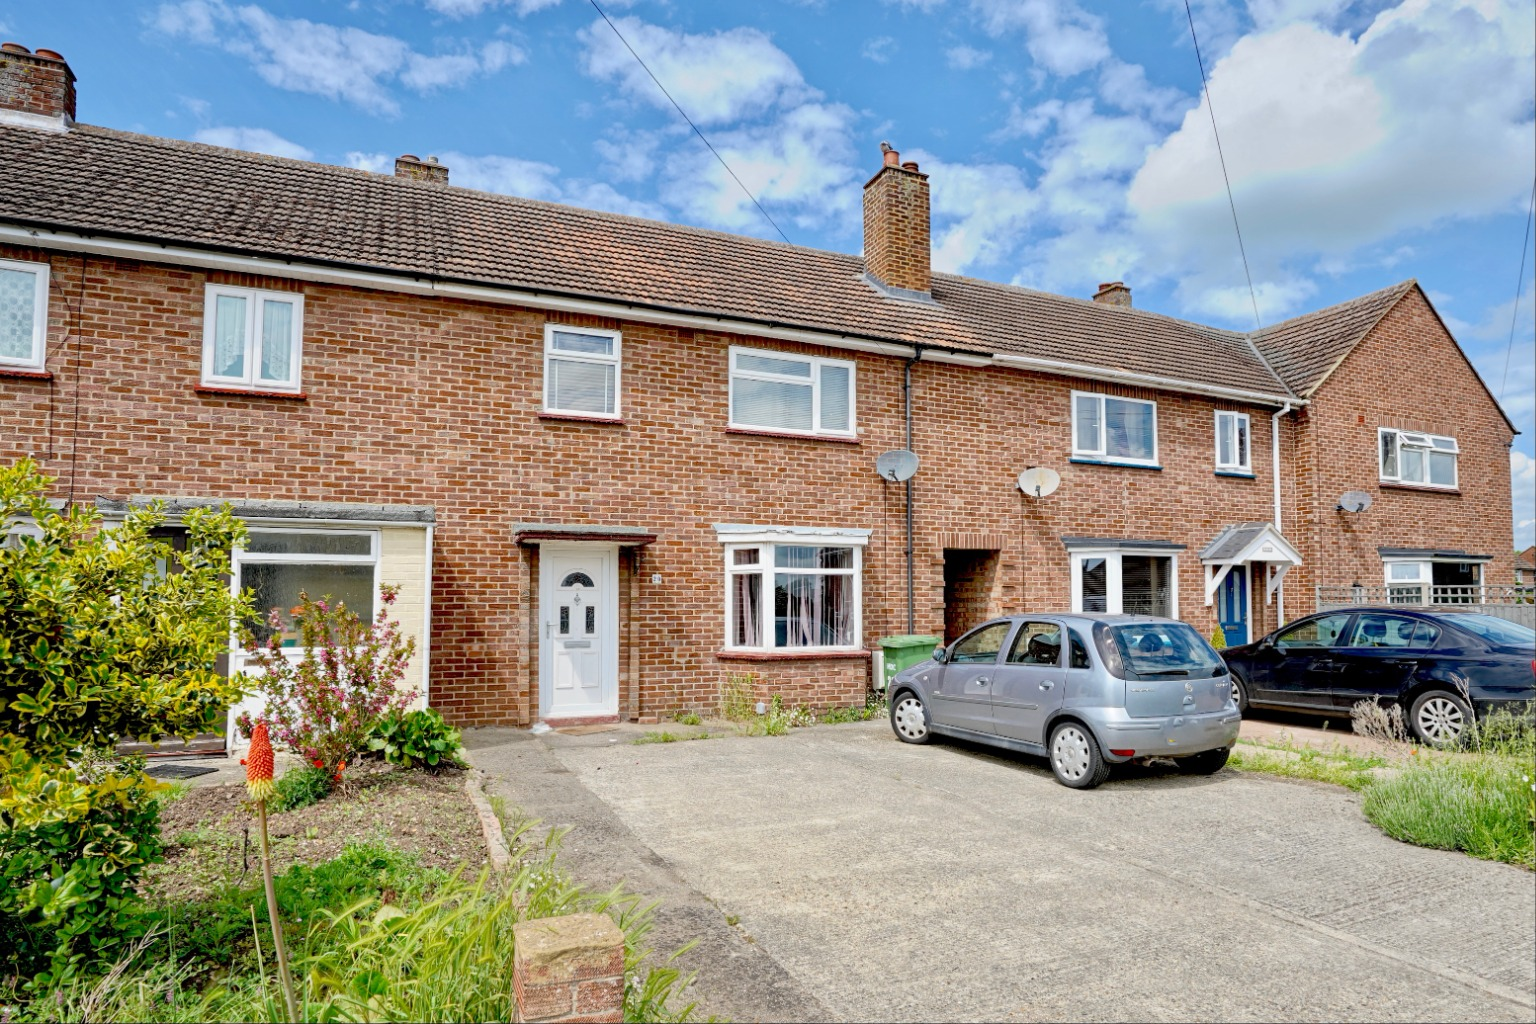 3 bed terraced house for sale in Leys Road, St. Neots  - Property Image 1